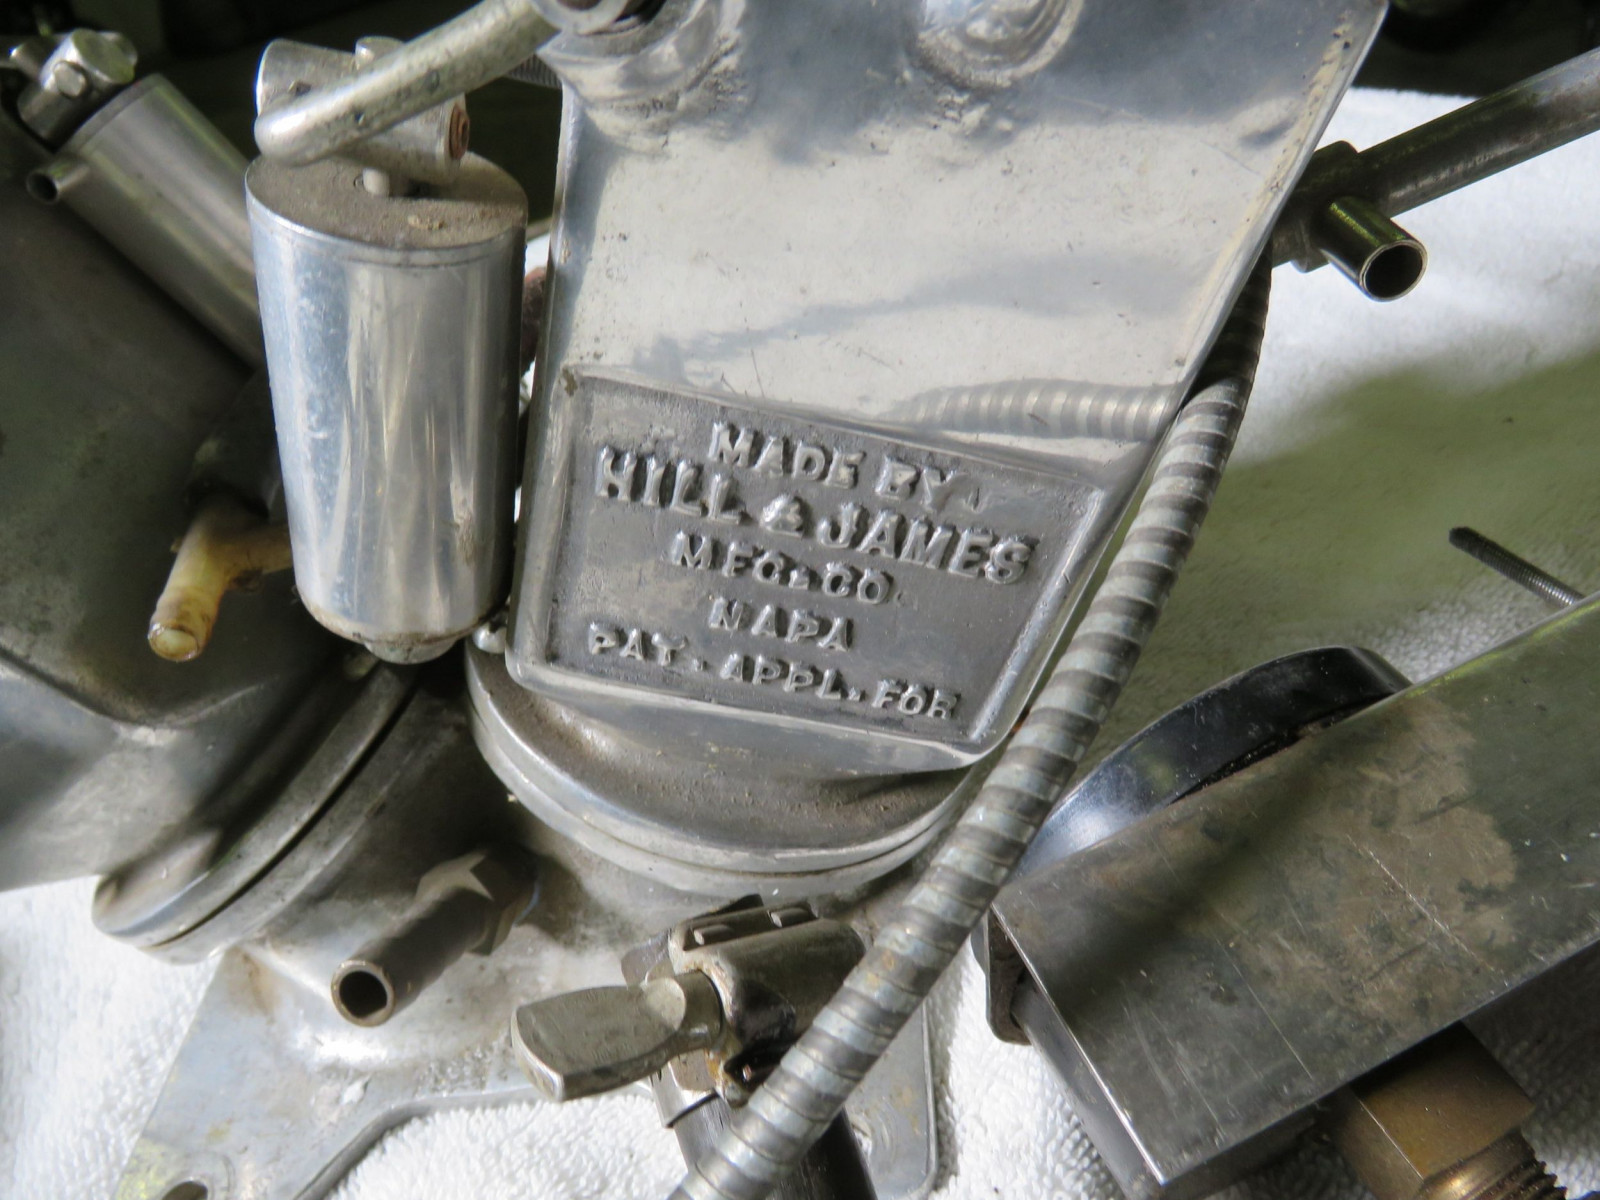 RARE Hill and James Funky Carburetor Speed Equipment - Image 3